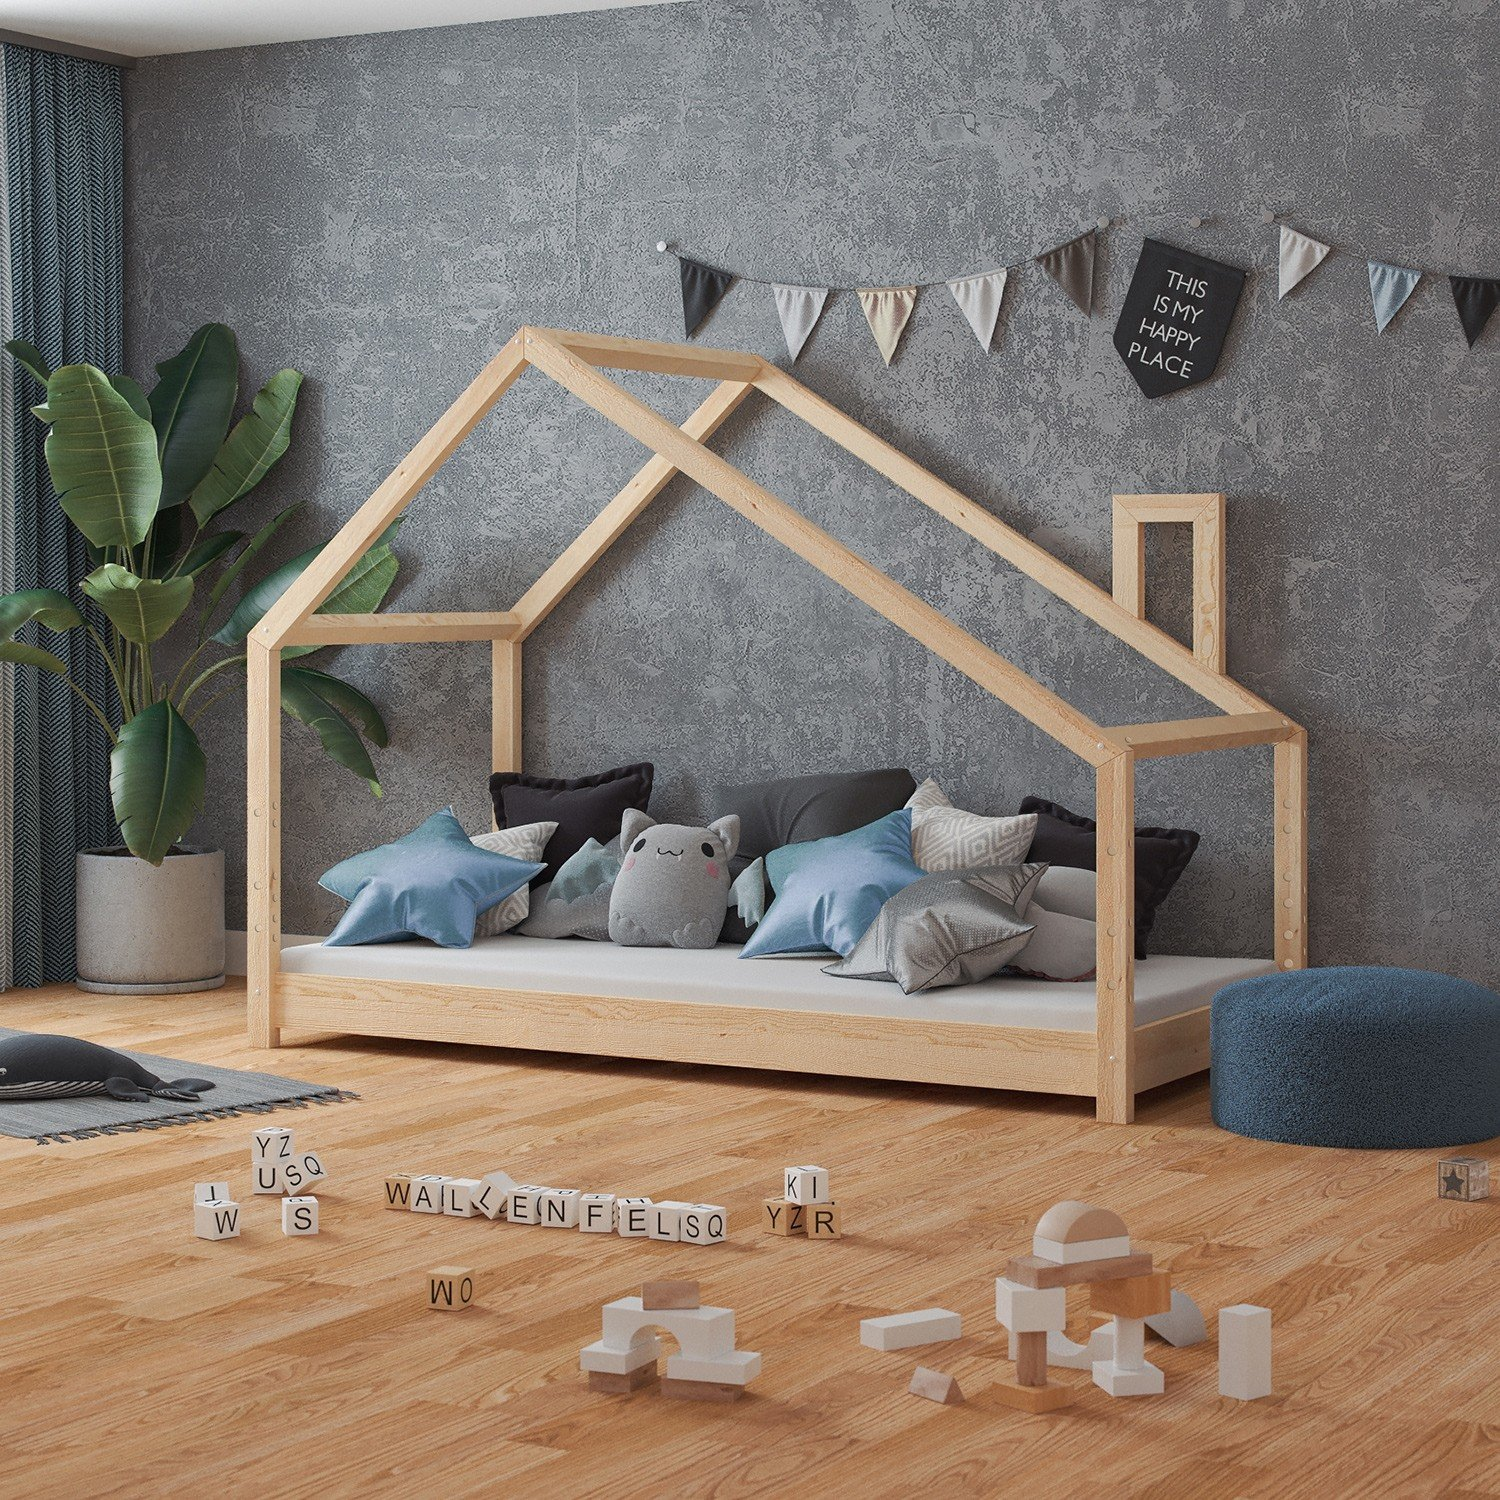 Gästebett Ideen Nature Kid Hausbett Milo In Kiefer Natur - Wallenfels Onlineshop